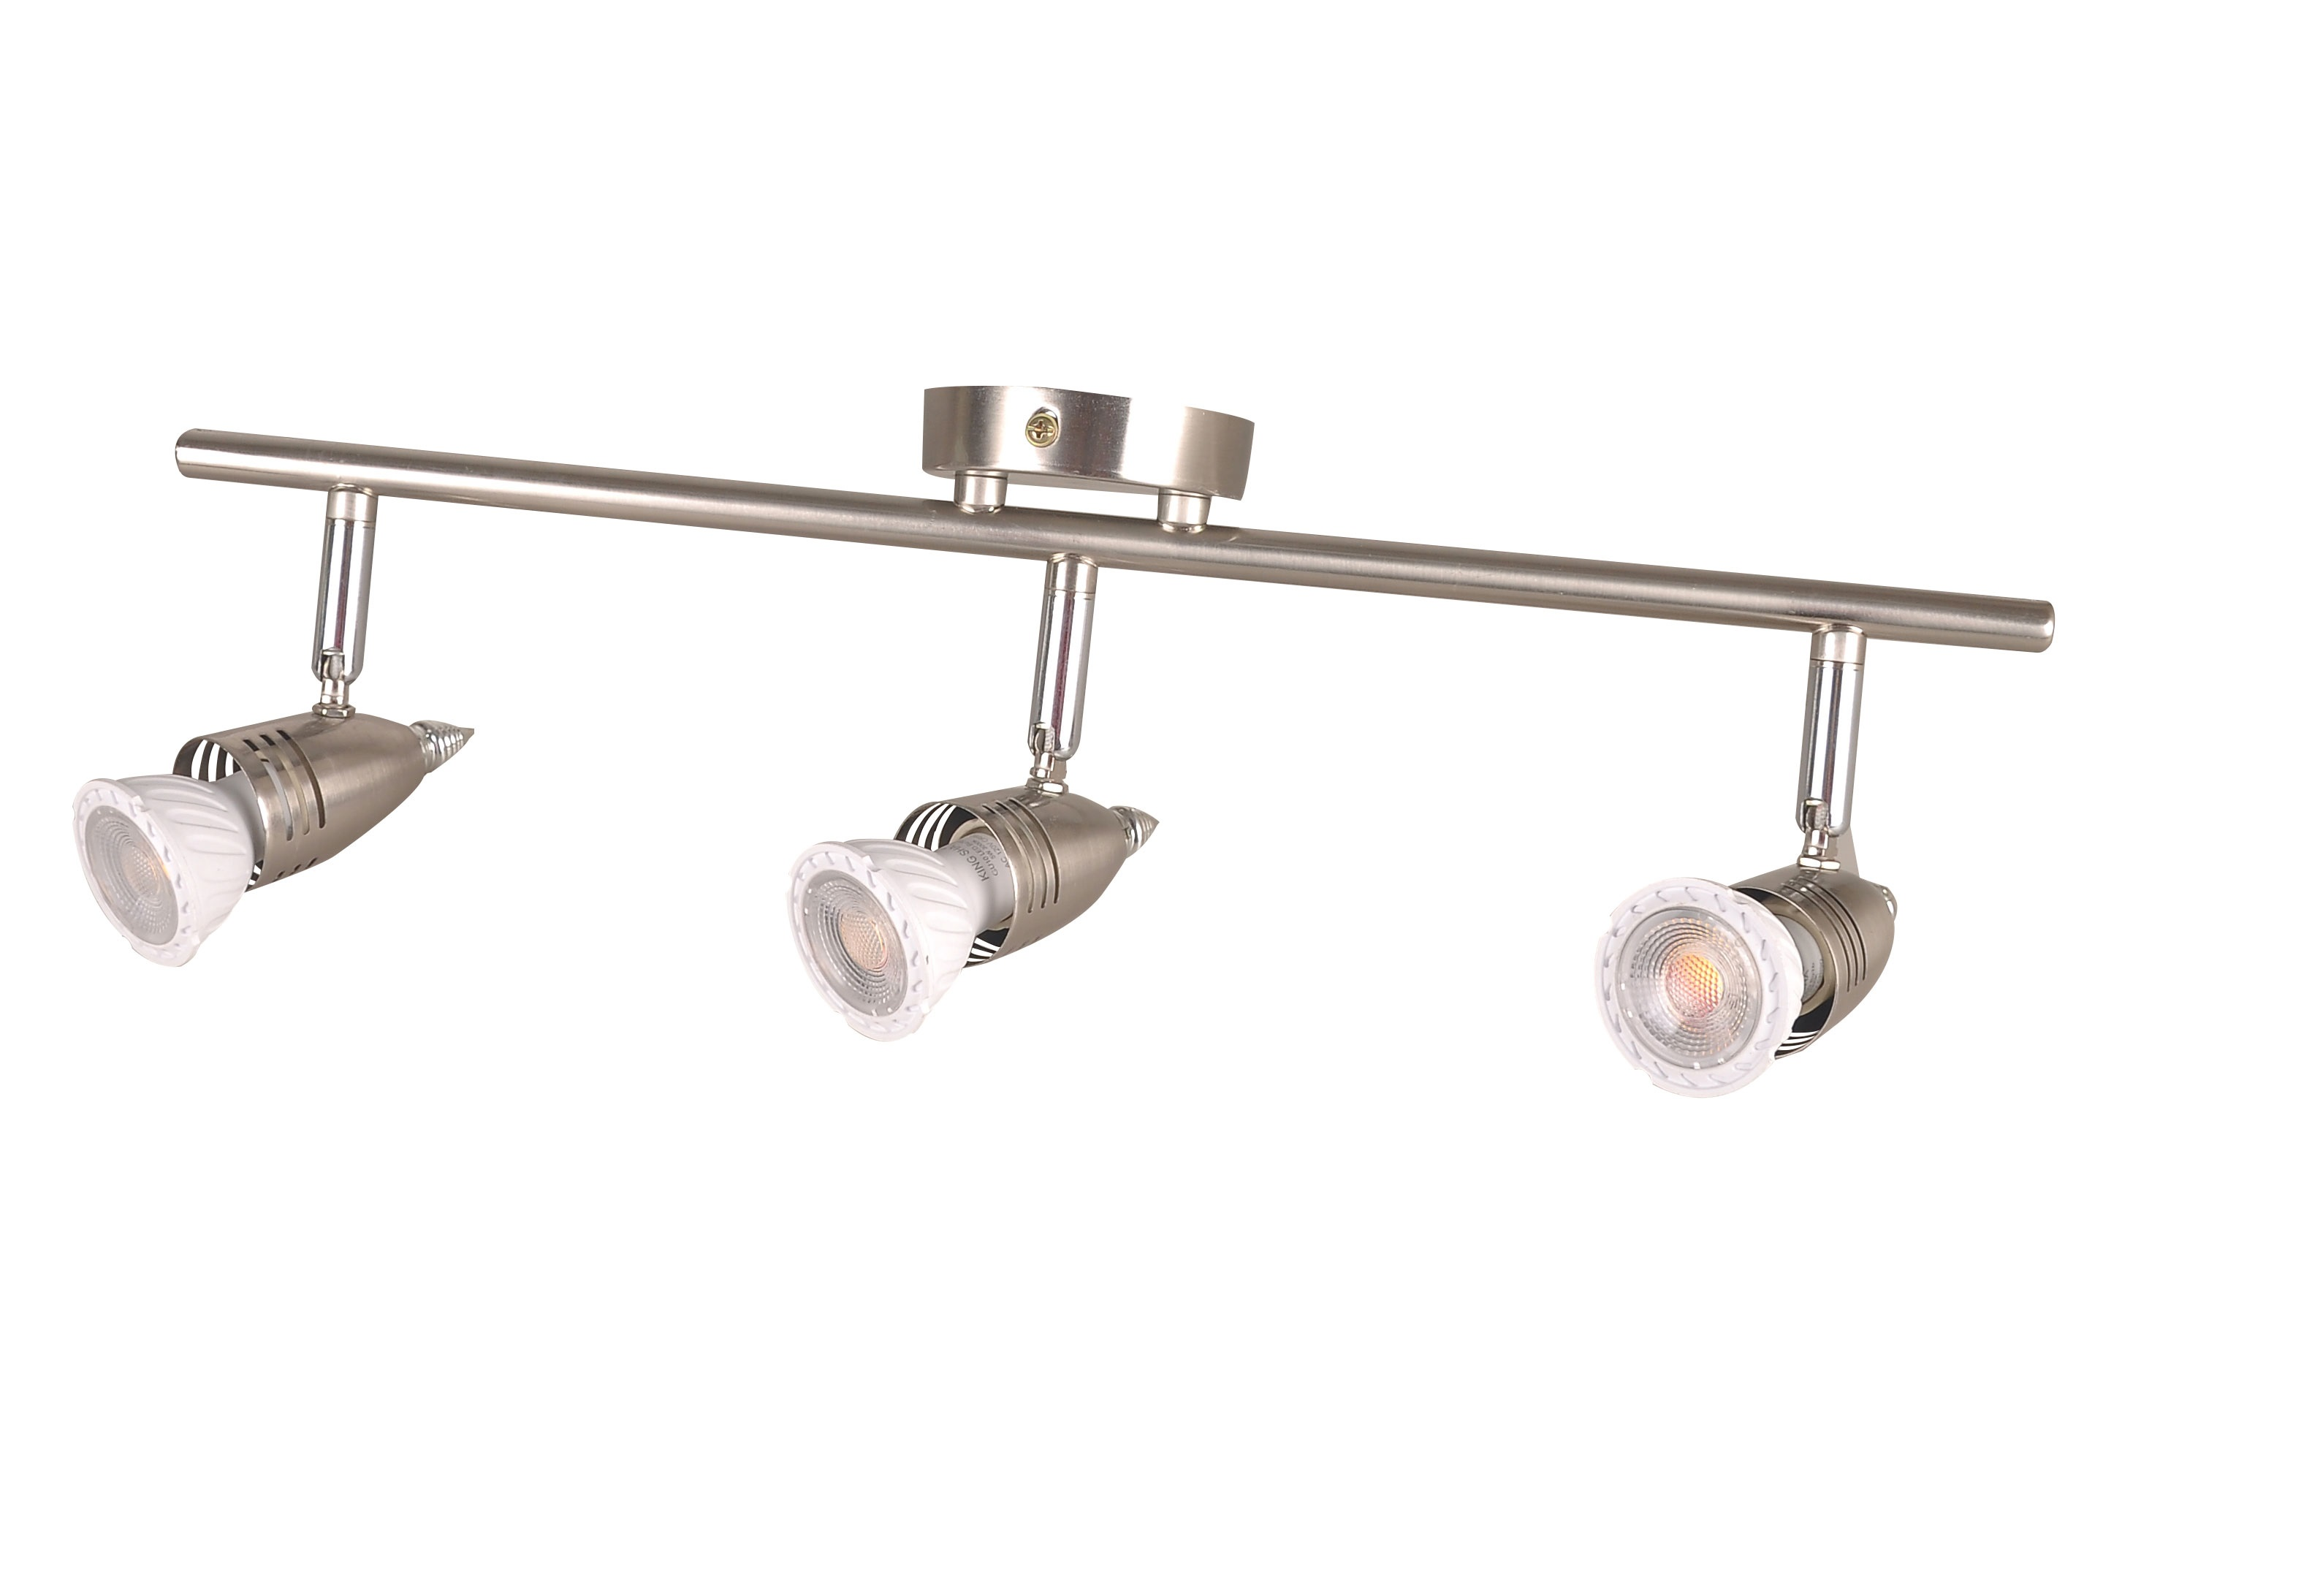 Kimyan Three Light Track Lighting Kit